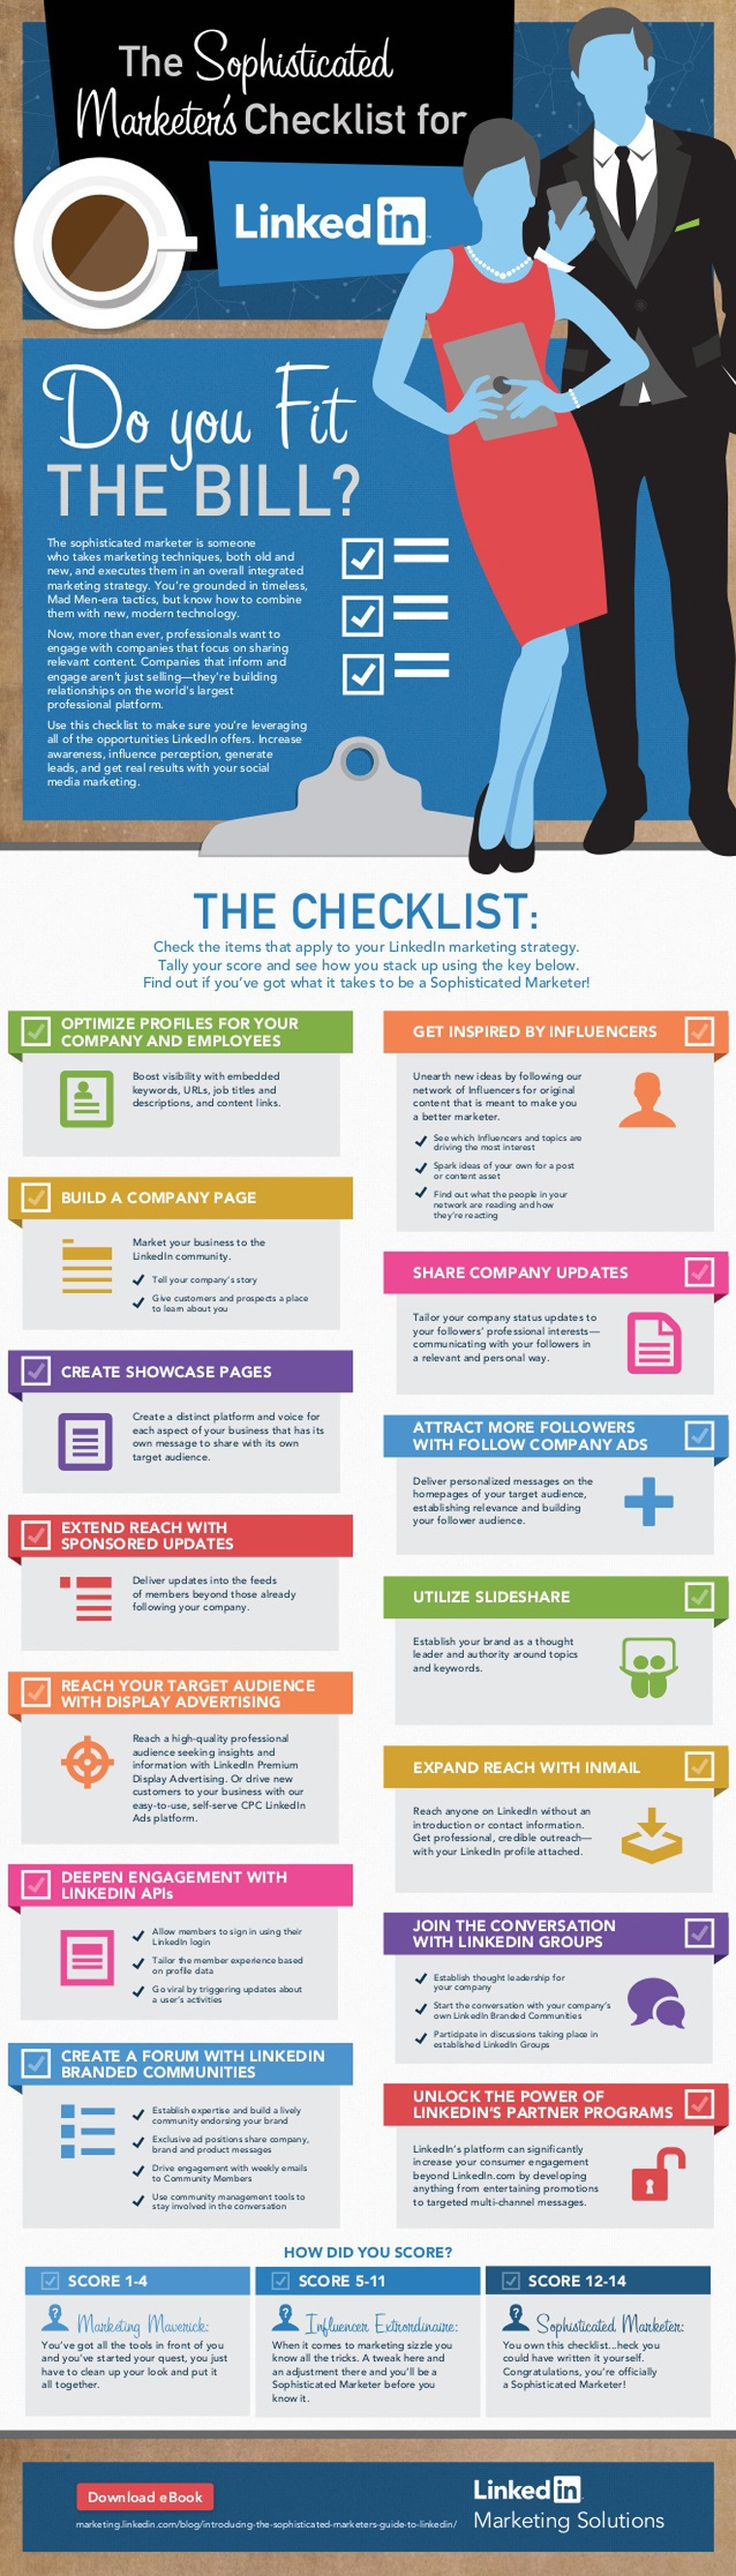 The Sophisticated Marketer's Guide to LinkedIn, an infographic